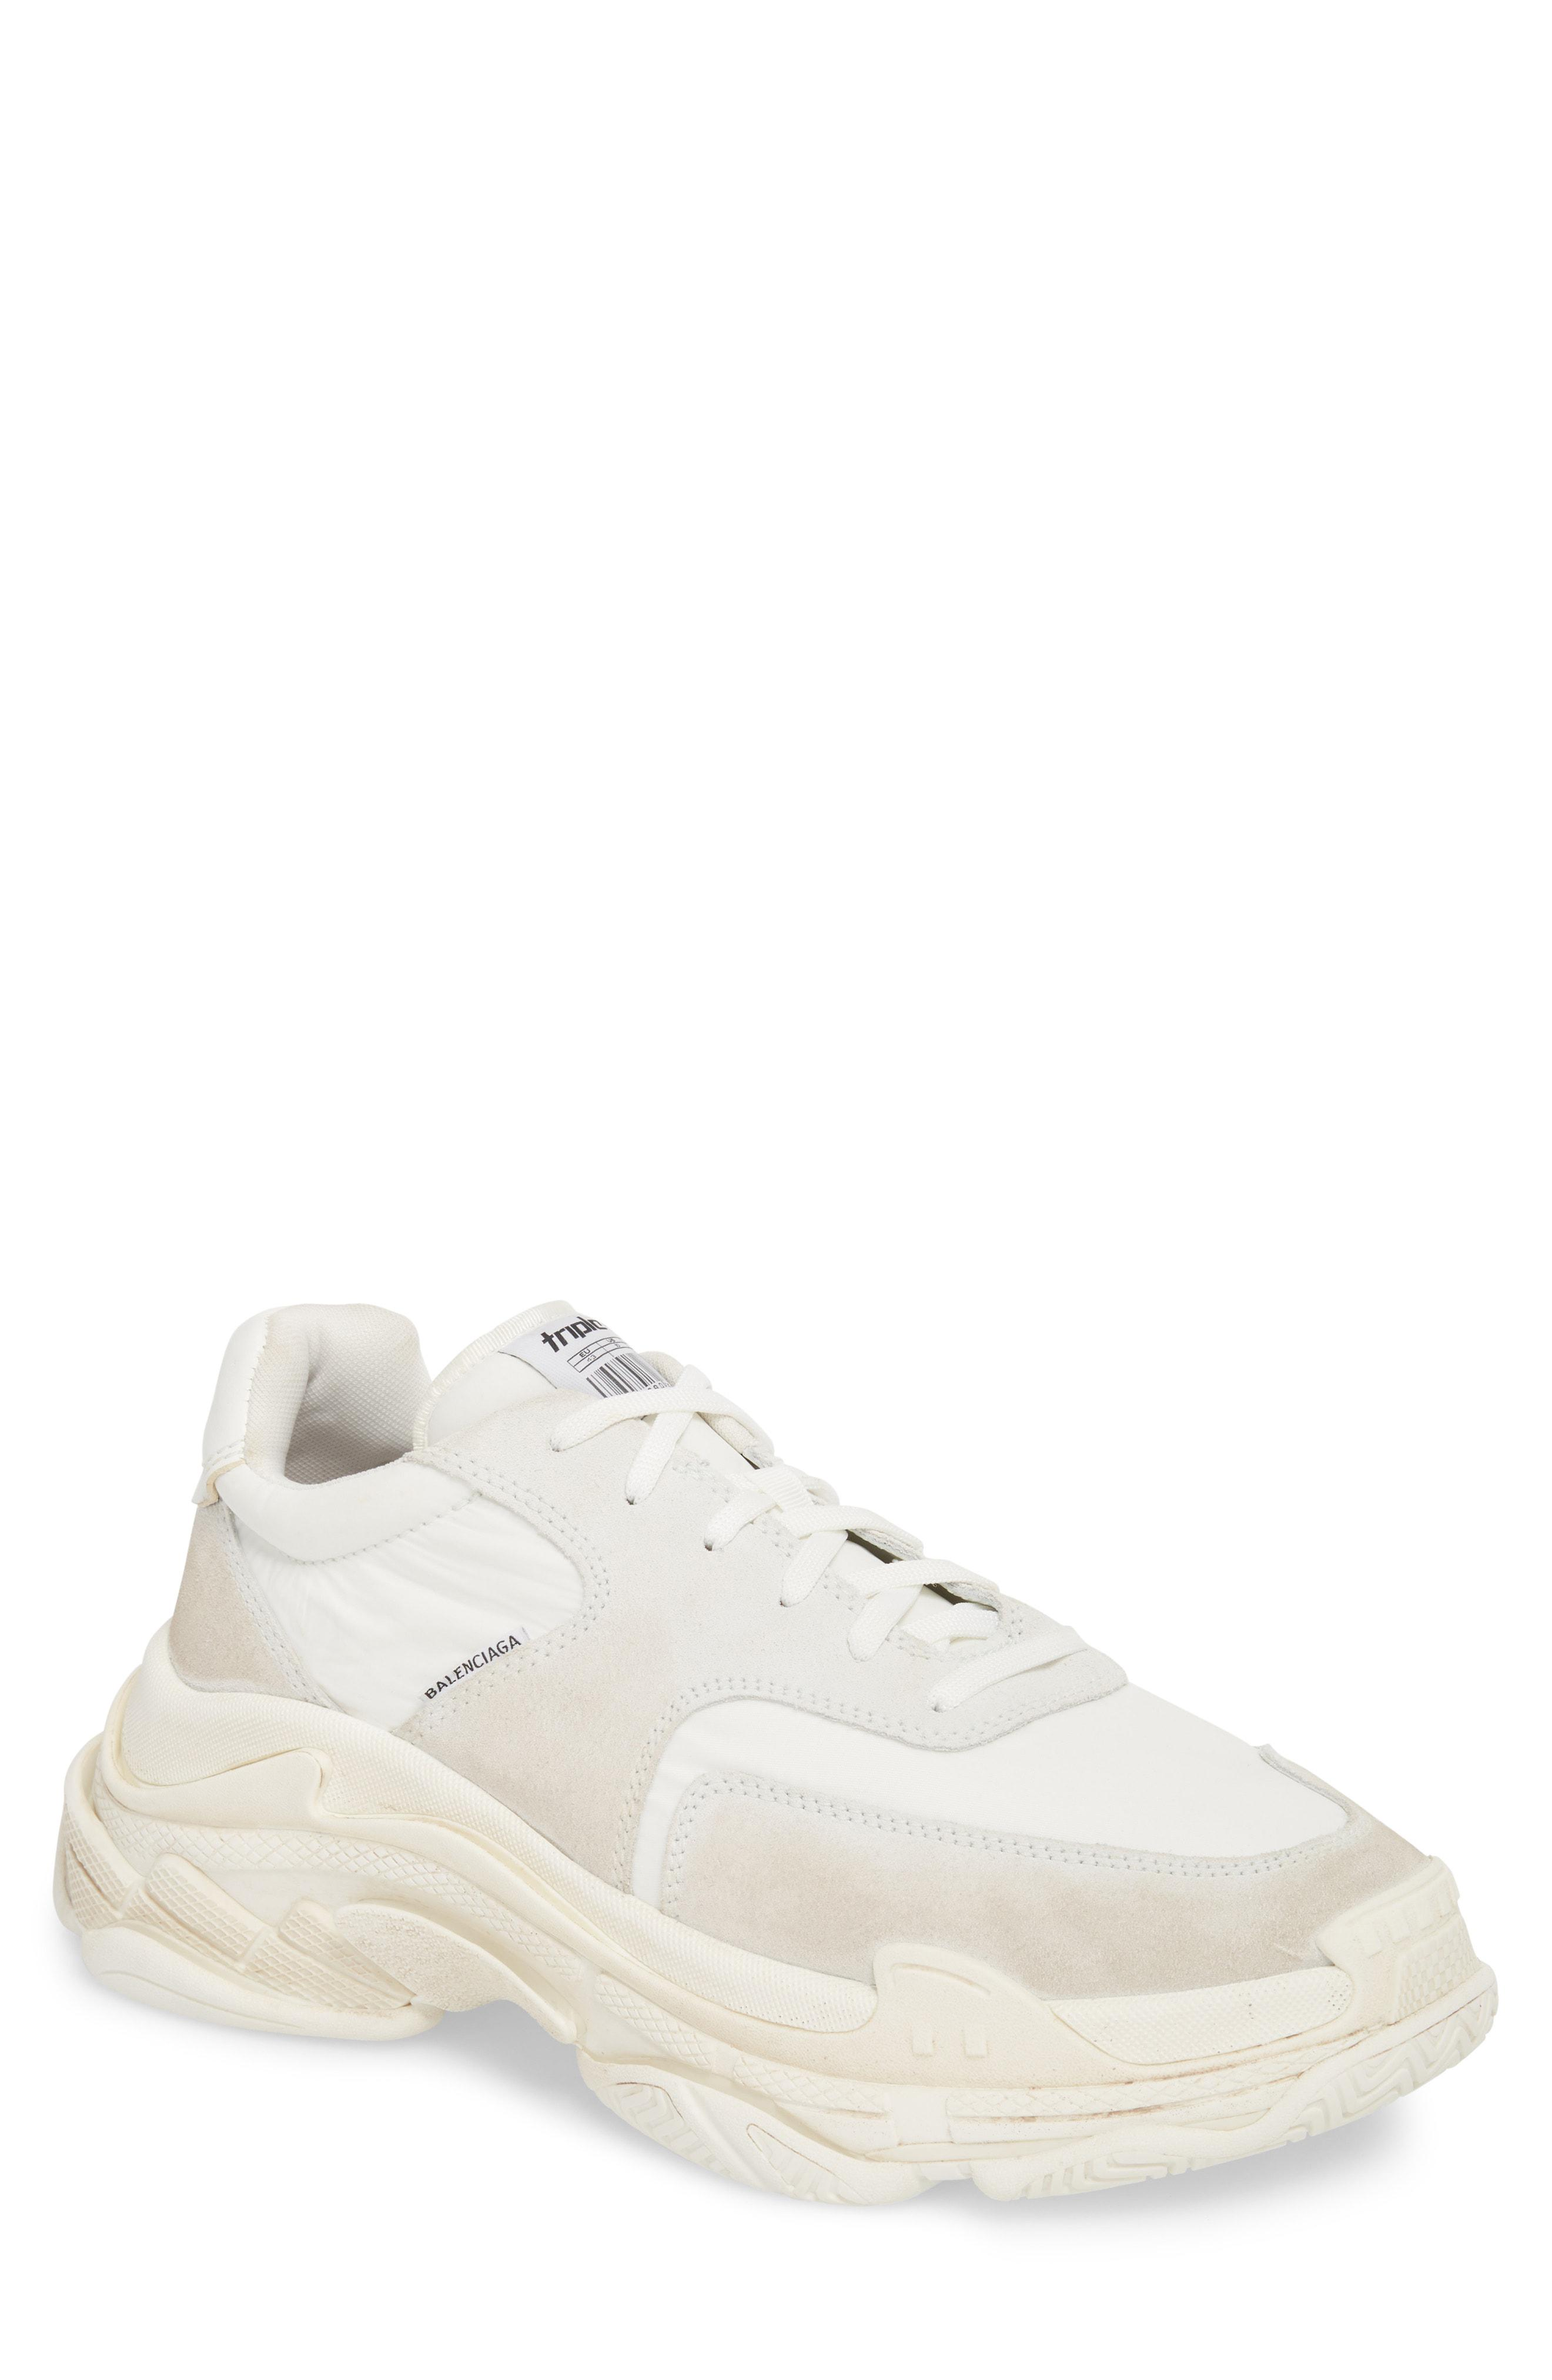 f7e2ee01fbd531 ... shoes peach red cool grey yellow running 99c34 343ce  germany balenciaga  white triple s retro sneaker for men lyst. view fullscreen 6a5af 1c472